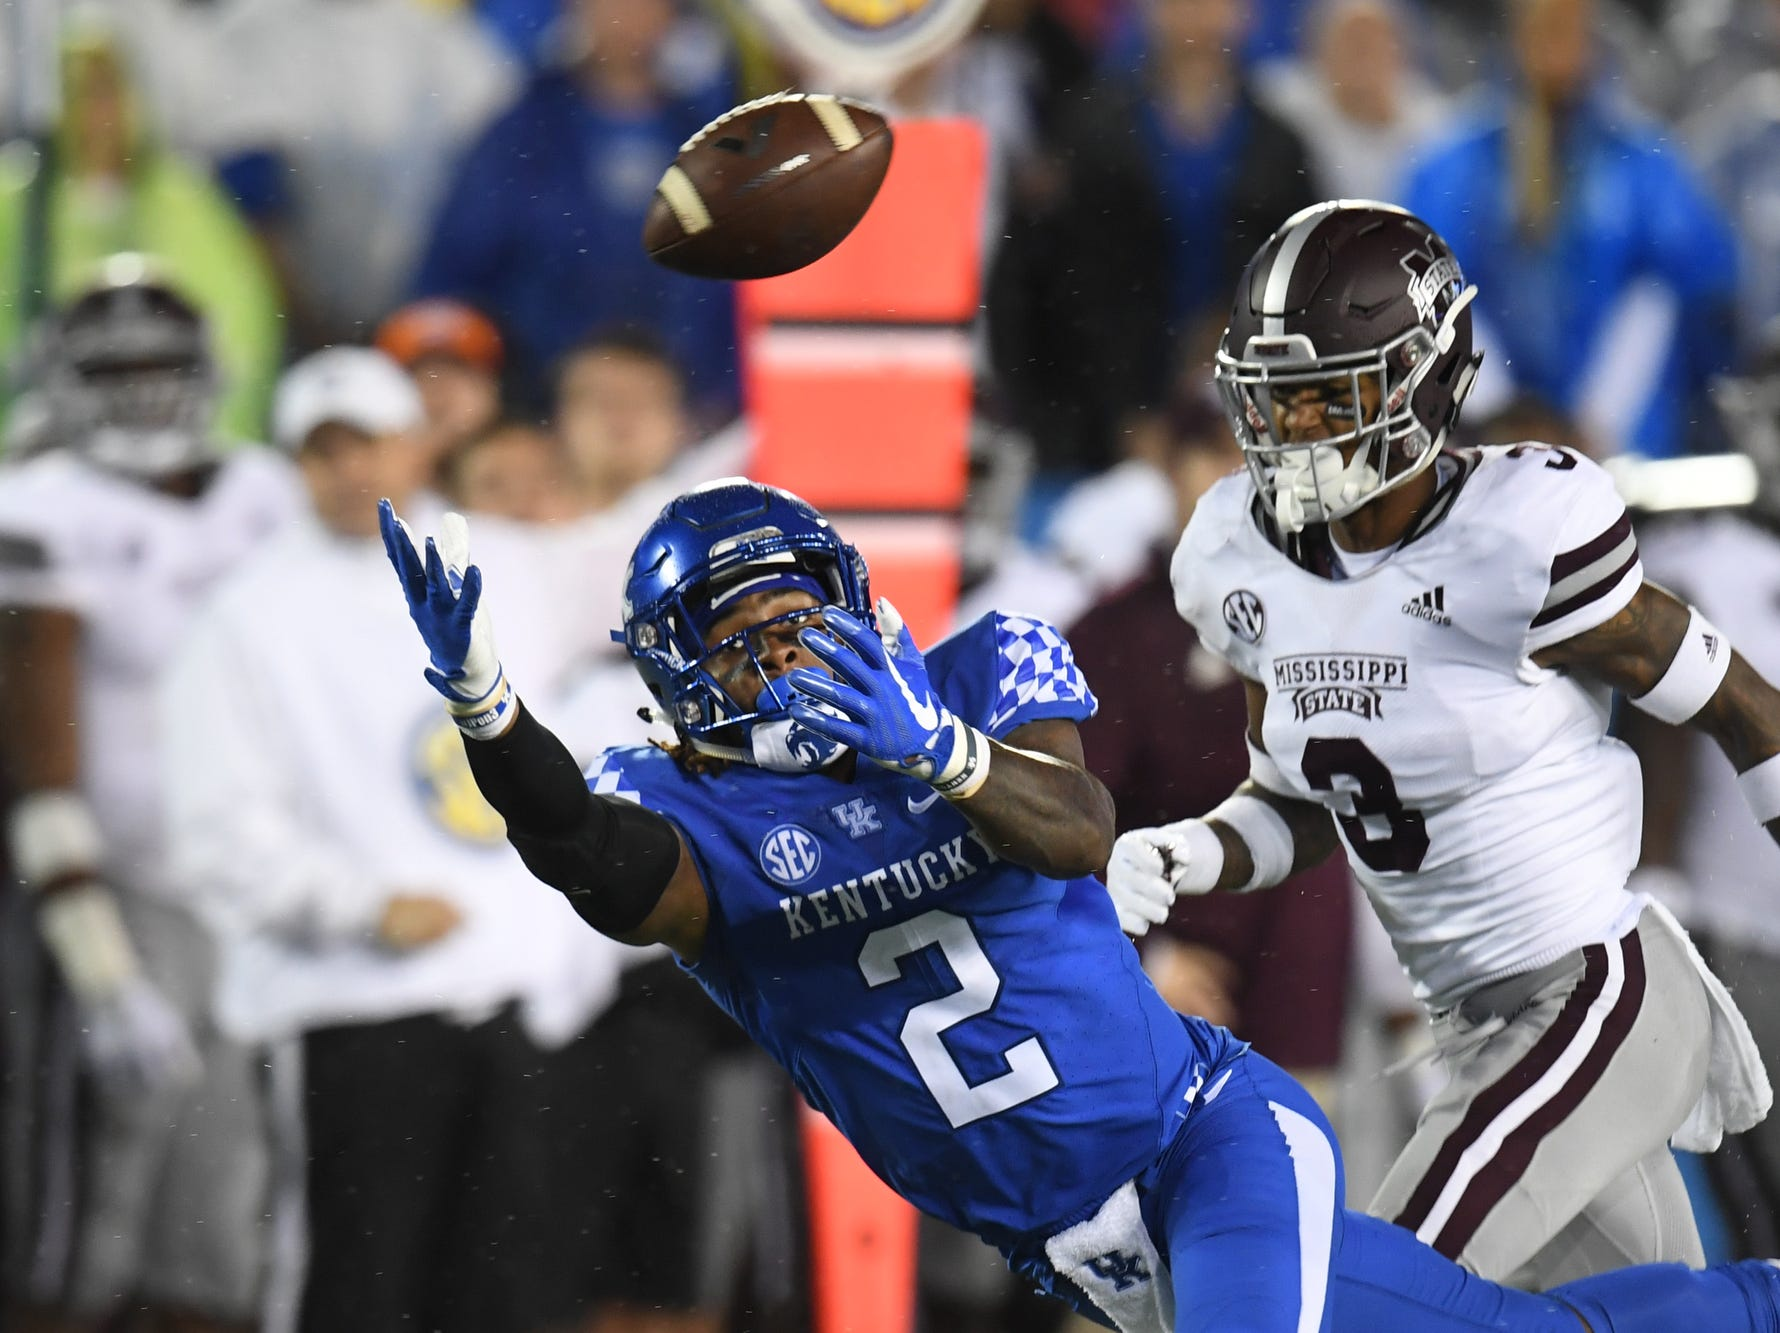 UK WR Dorian Baker stretches out for the pass but comes up short during the University of Kentucky football game against Mississippi State at Kroger Field in Lexington, Kentucky on Saturday, September 22, 2018.